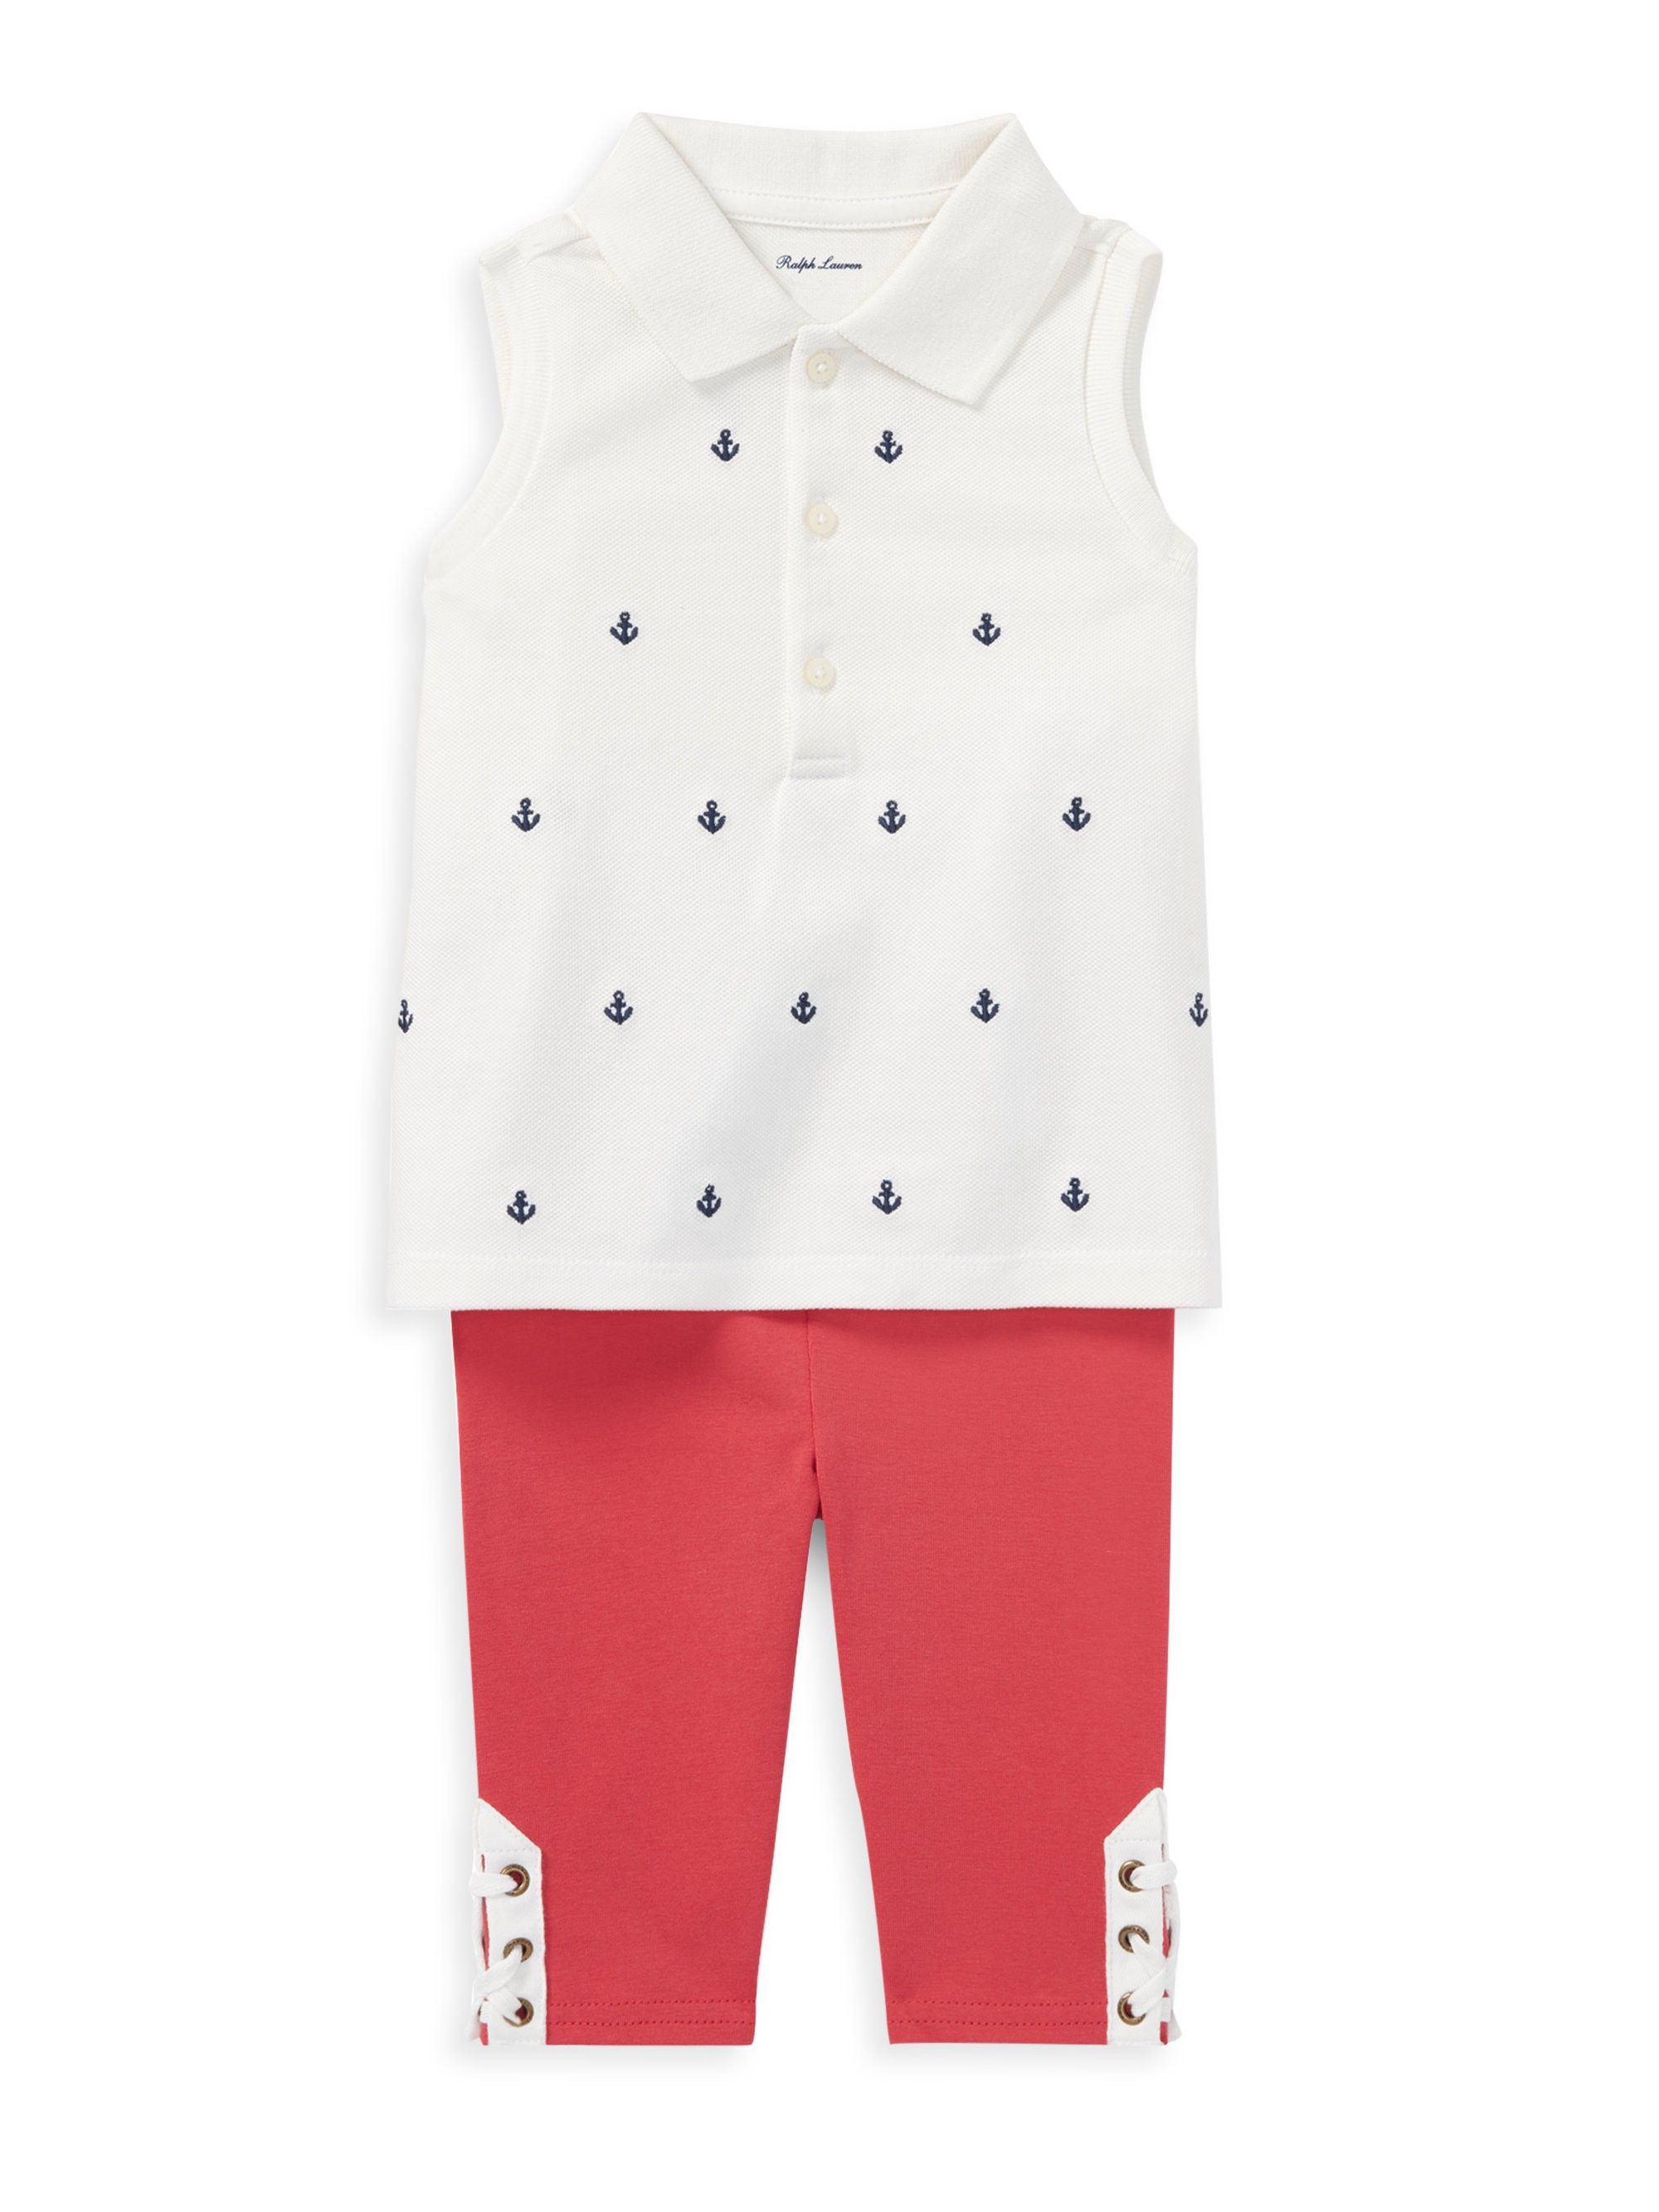 24c170fd1200d Ralph Lauren Baby Girl s Two-Piece Sleeveless Cotton Polo And Leggings Set  - White 24 Months